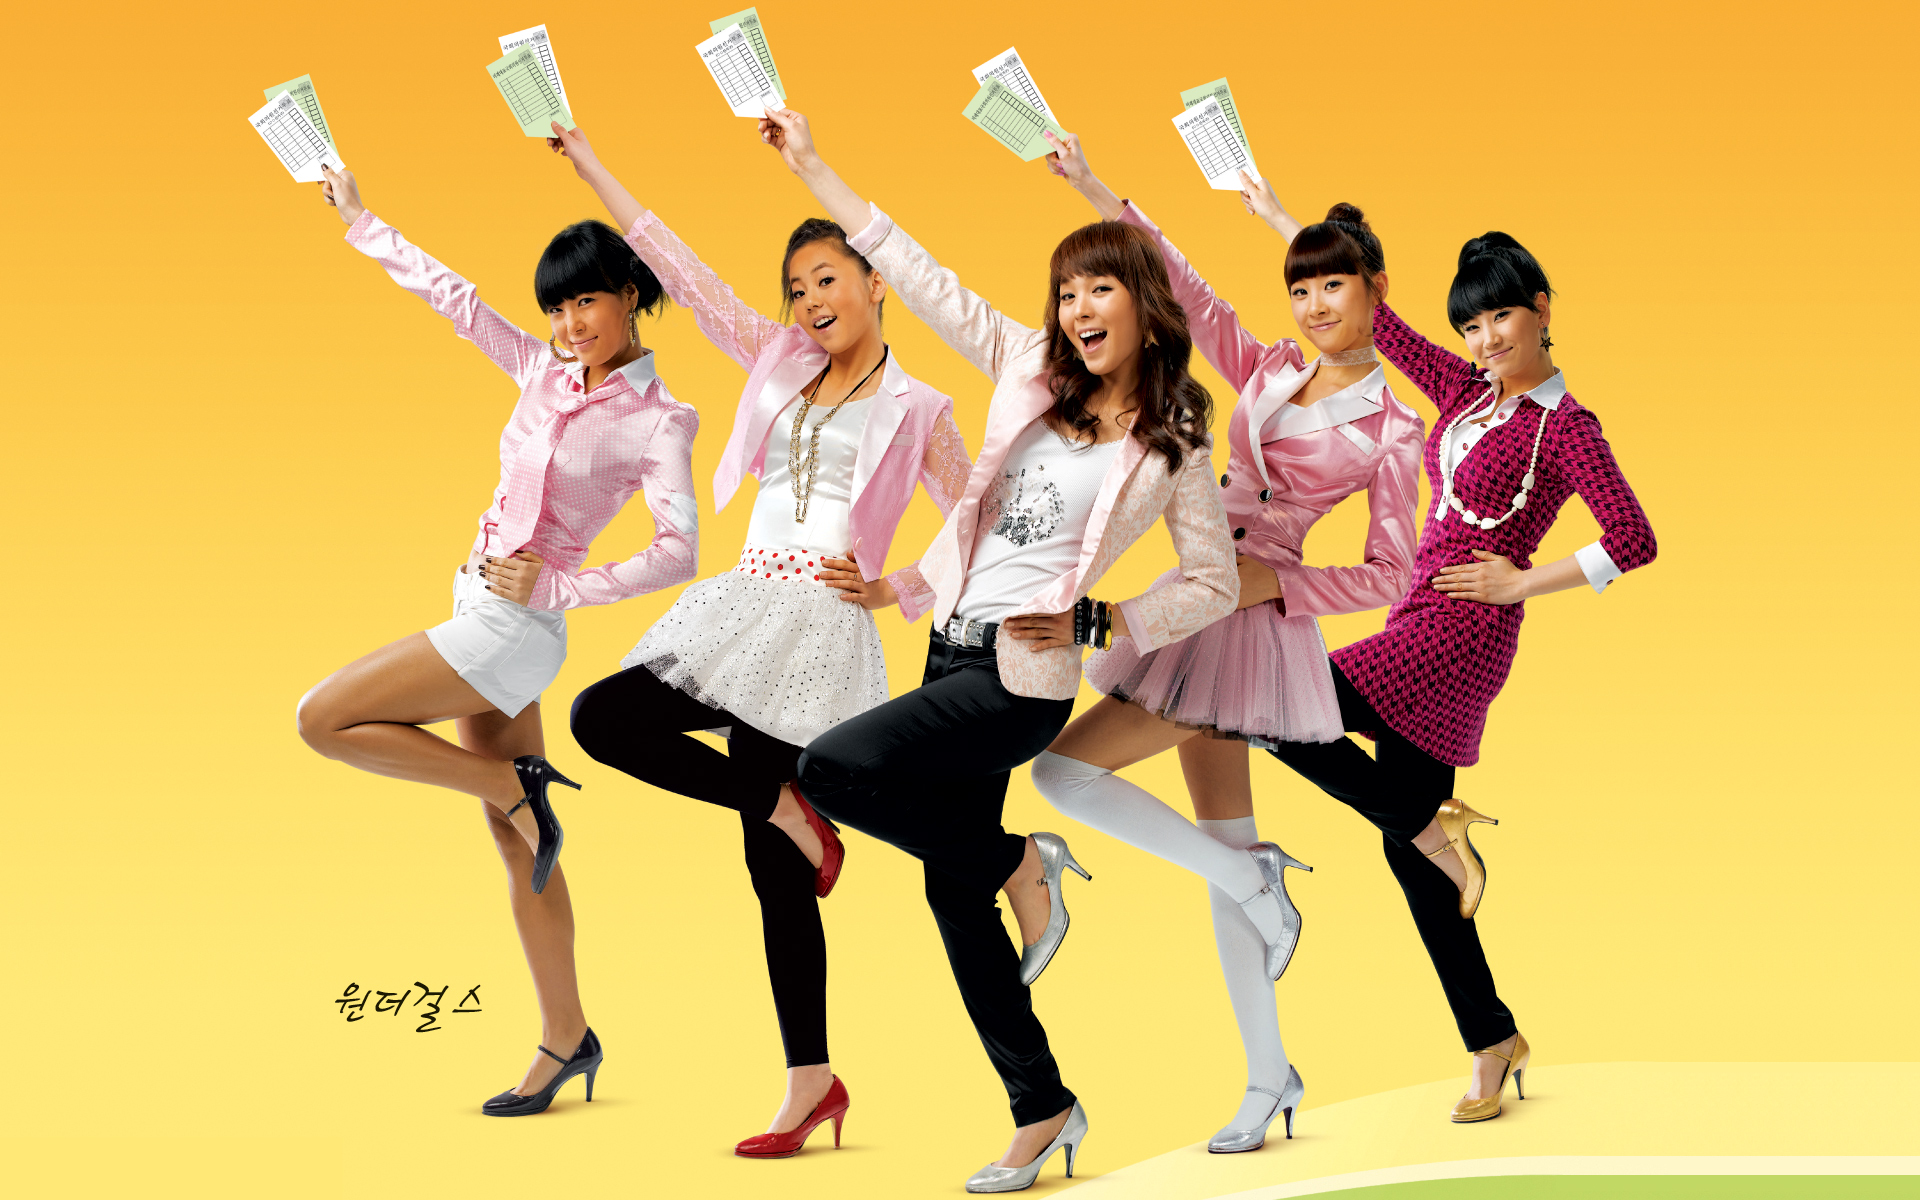 wonder_girls_wallpaper